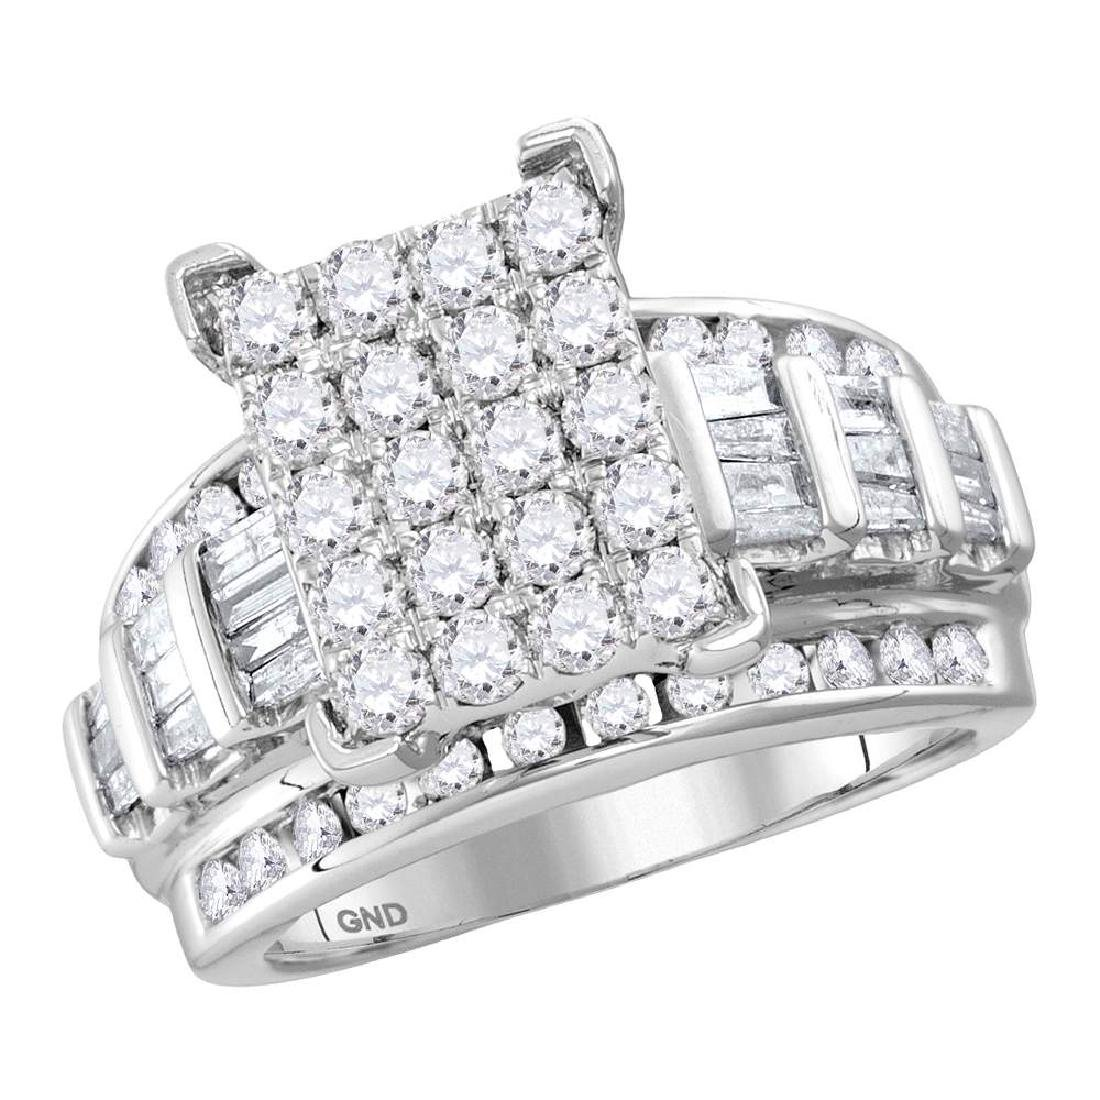 3.02 CTW Diamond Cluster Bridal Engagement Ring 10KT